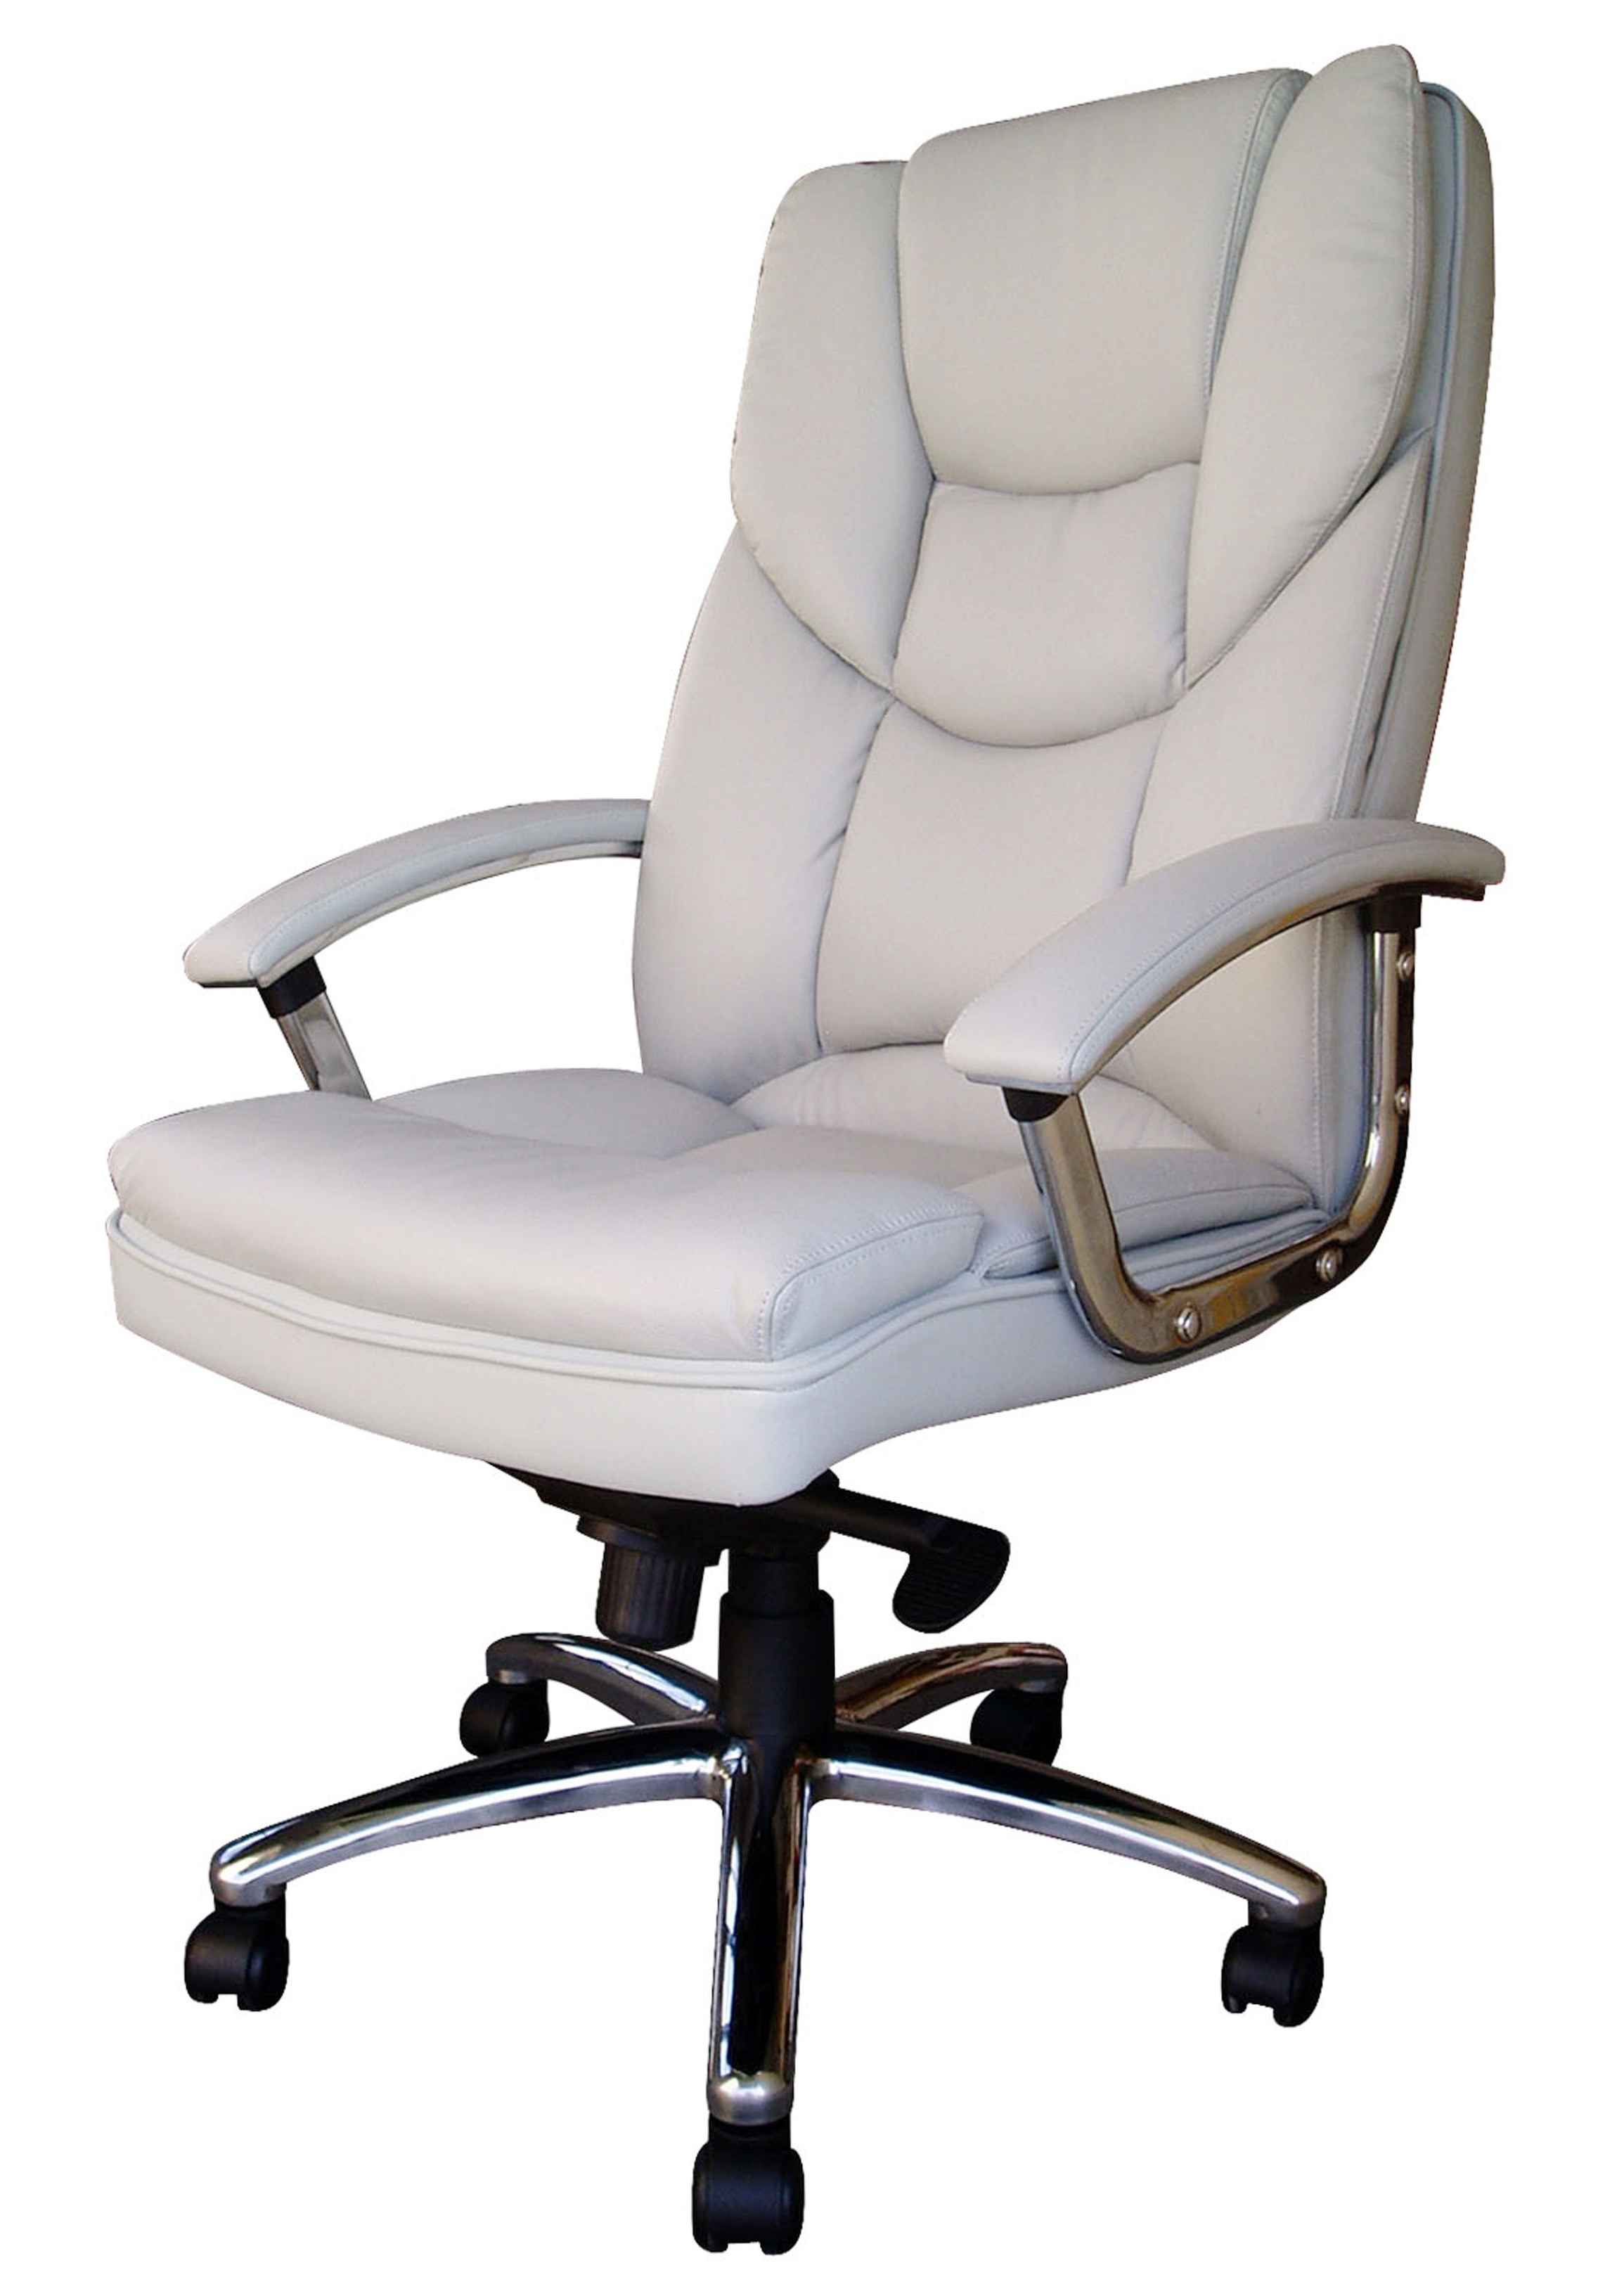 Furniture : 6Sgg7Kl0 Alphason Verona Leather Office Chair Inside Latest Verona Cream Executive Leather Office Chairs (View 19 of 20)